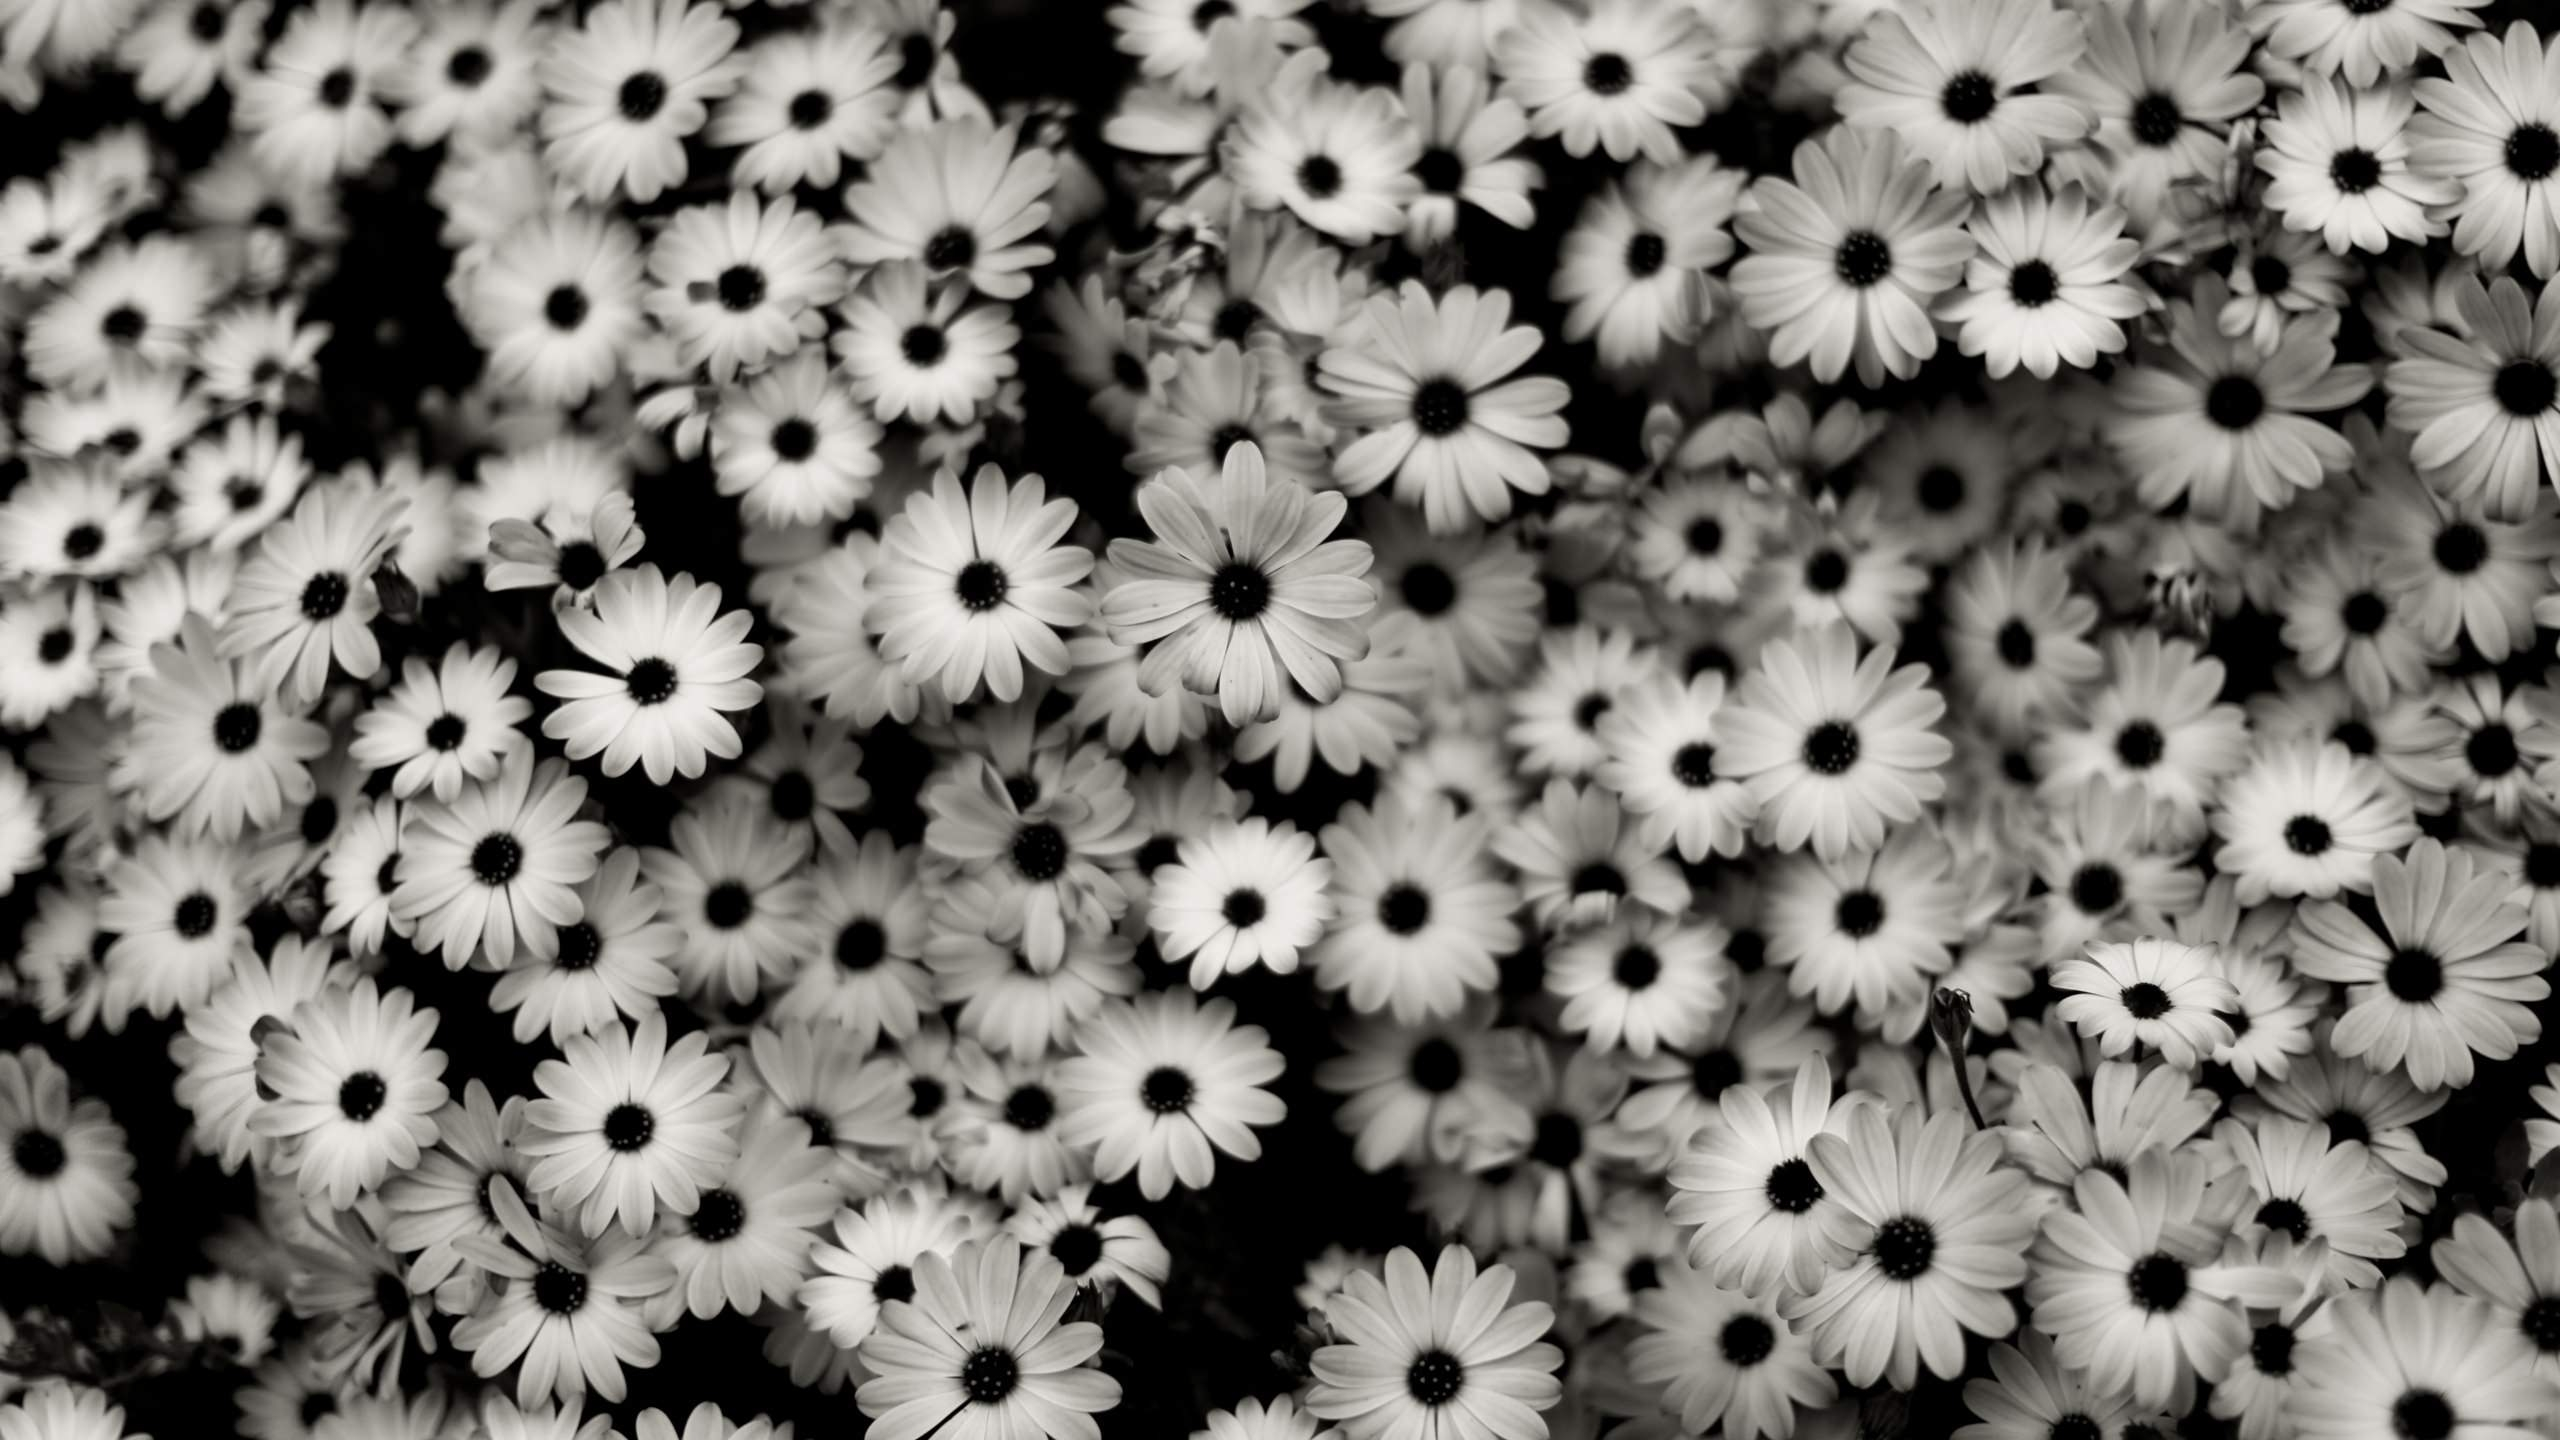 Fascinating Black and White Floral Wallpaper